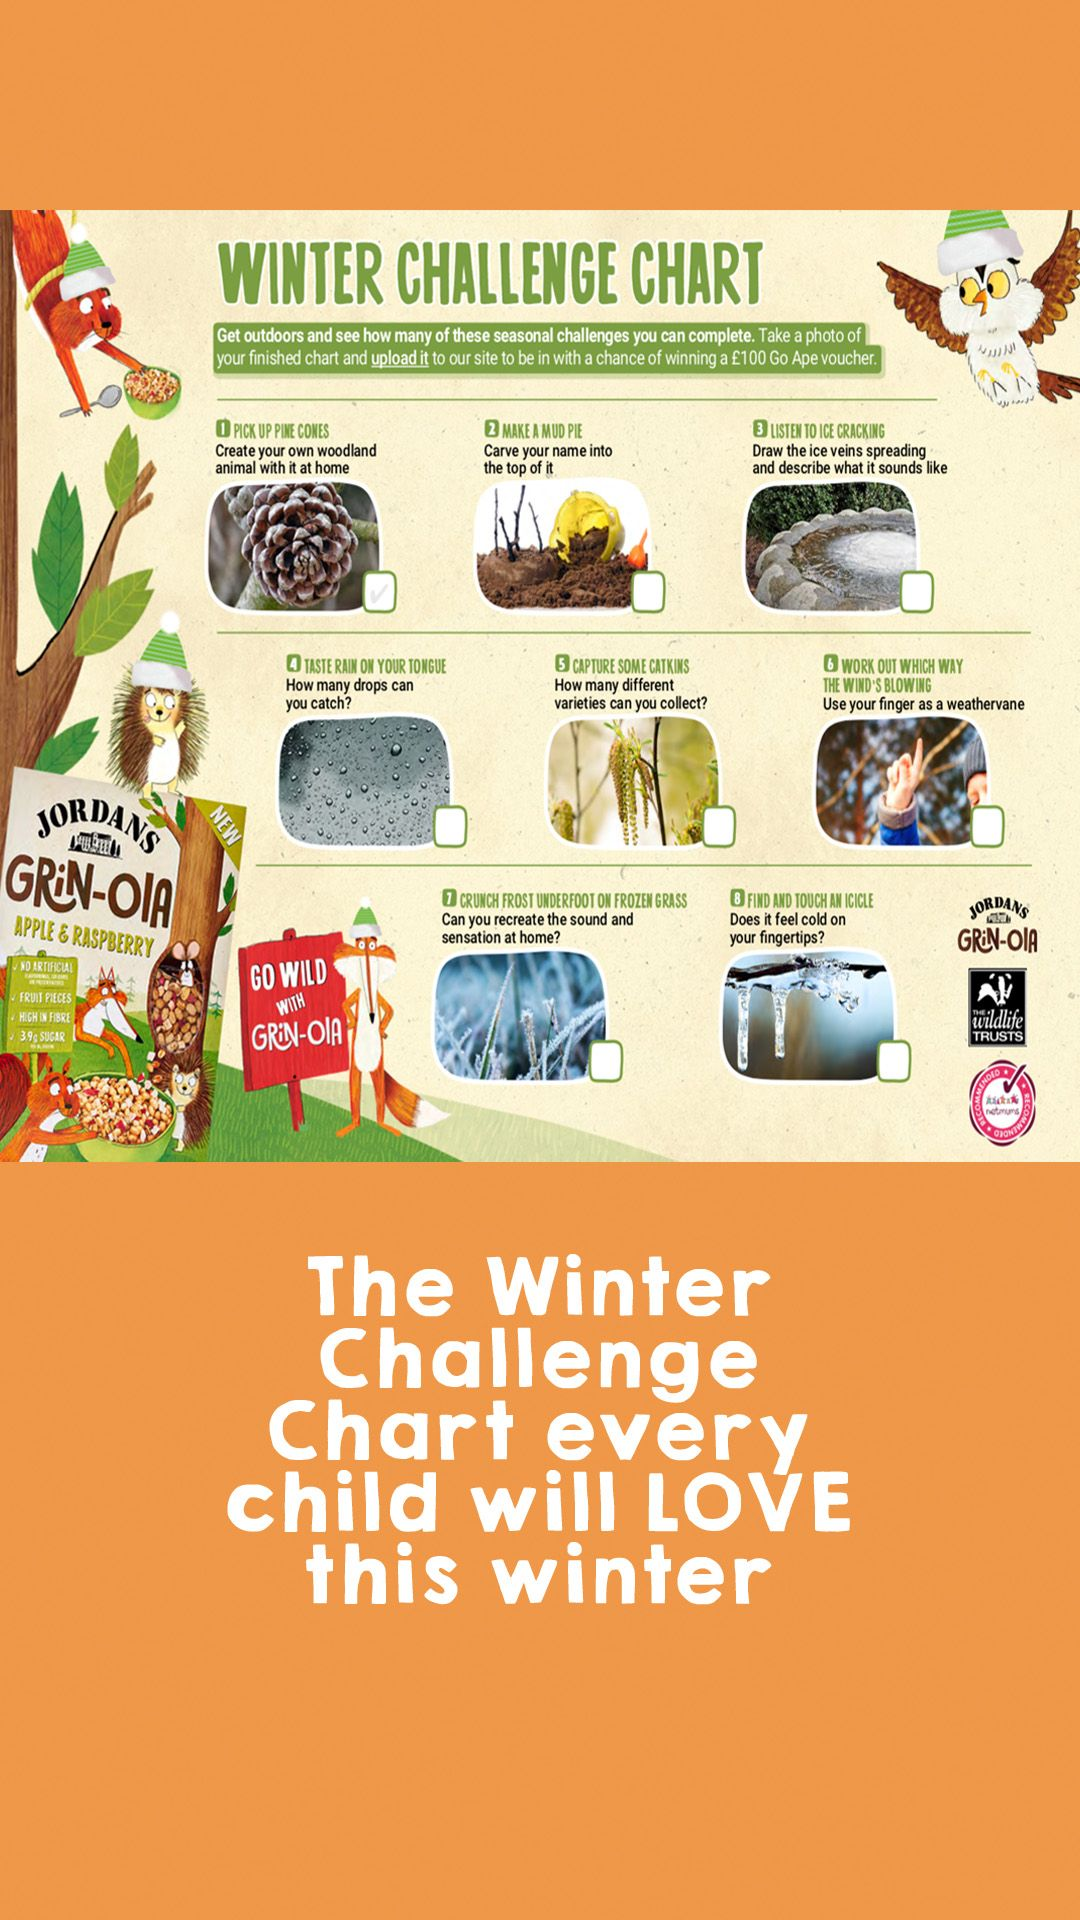 The Winter Challenge Chart Every Child Will Love This